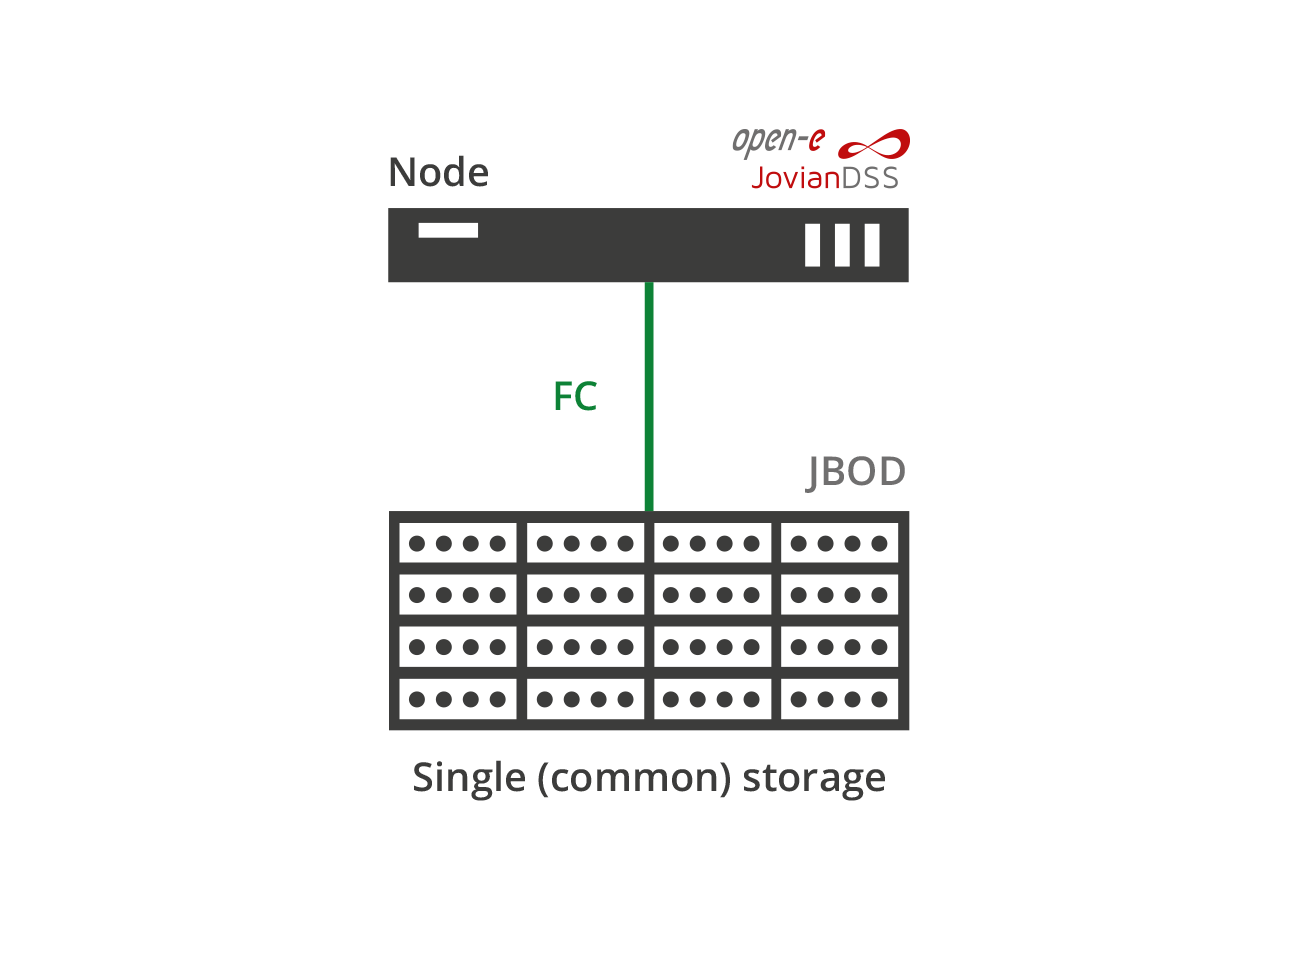 Single FC connected storage